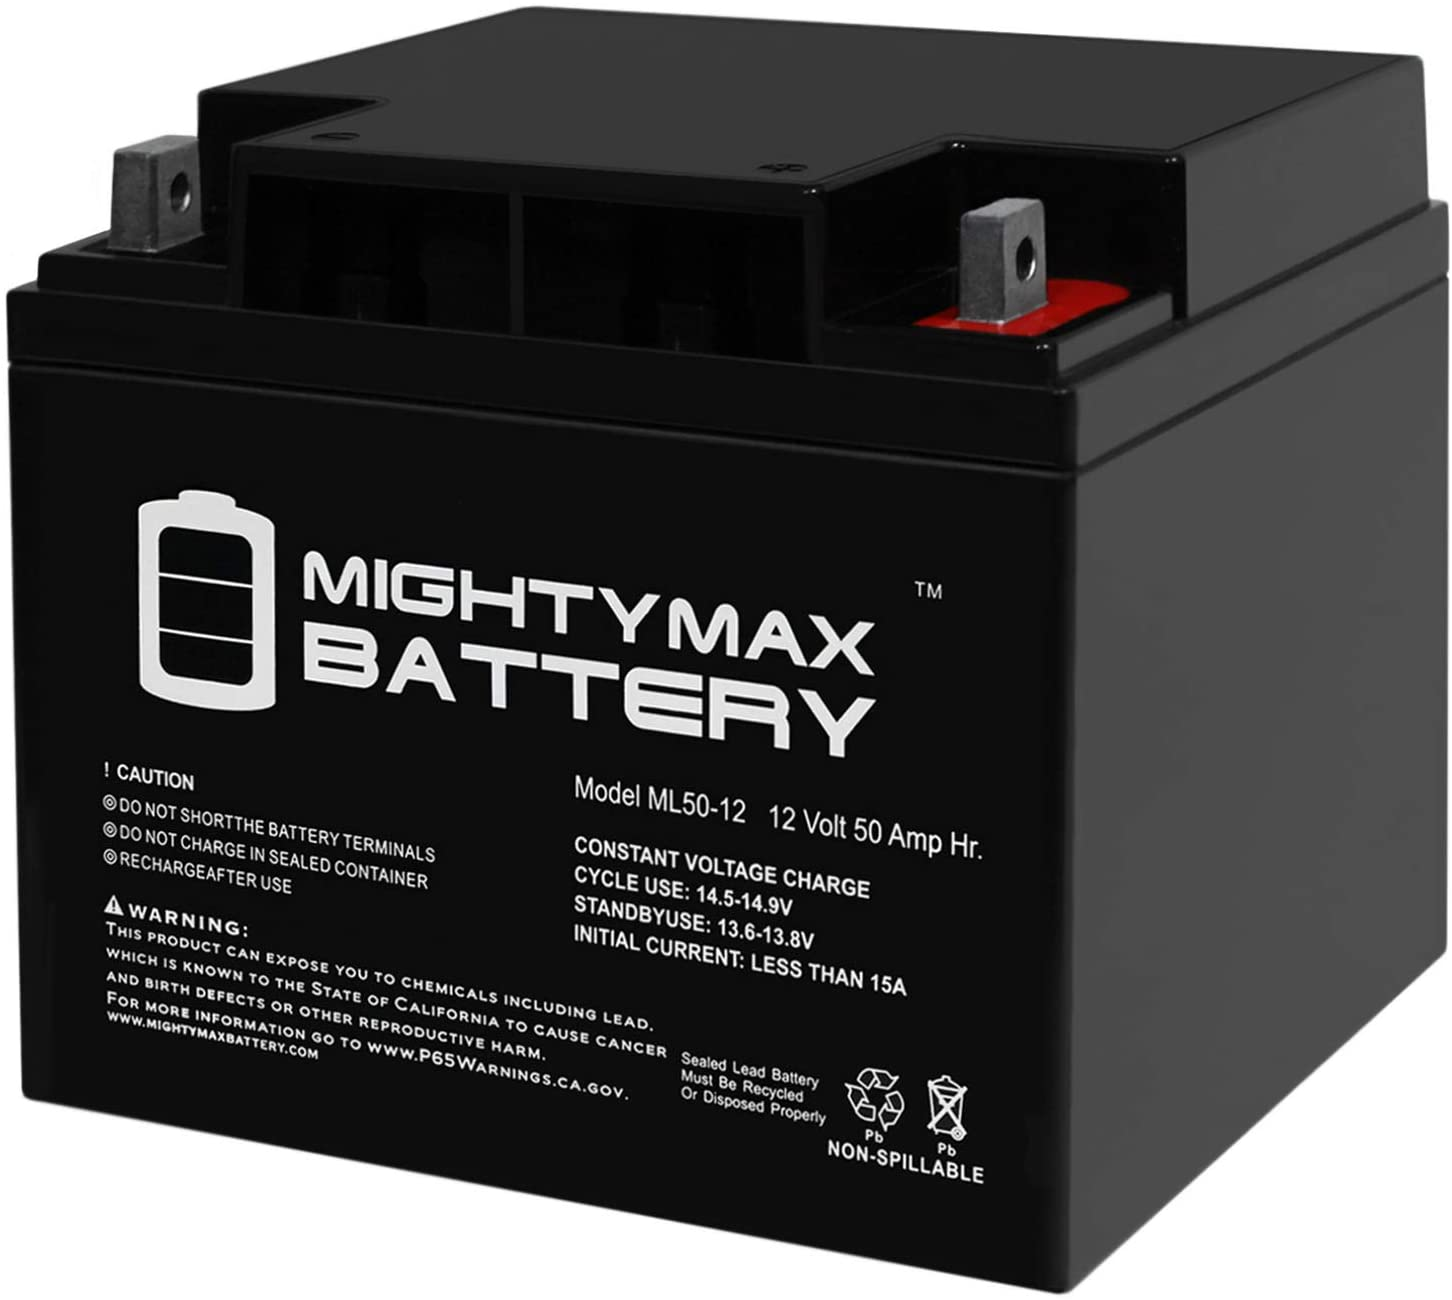 Mighty Max Battery ML50-12 -12V 50AH Battery for SIMPLEX Alarm 2081-9298 Brand Product